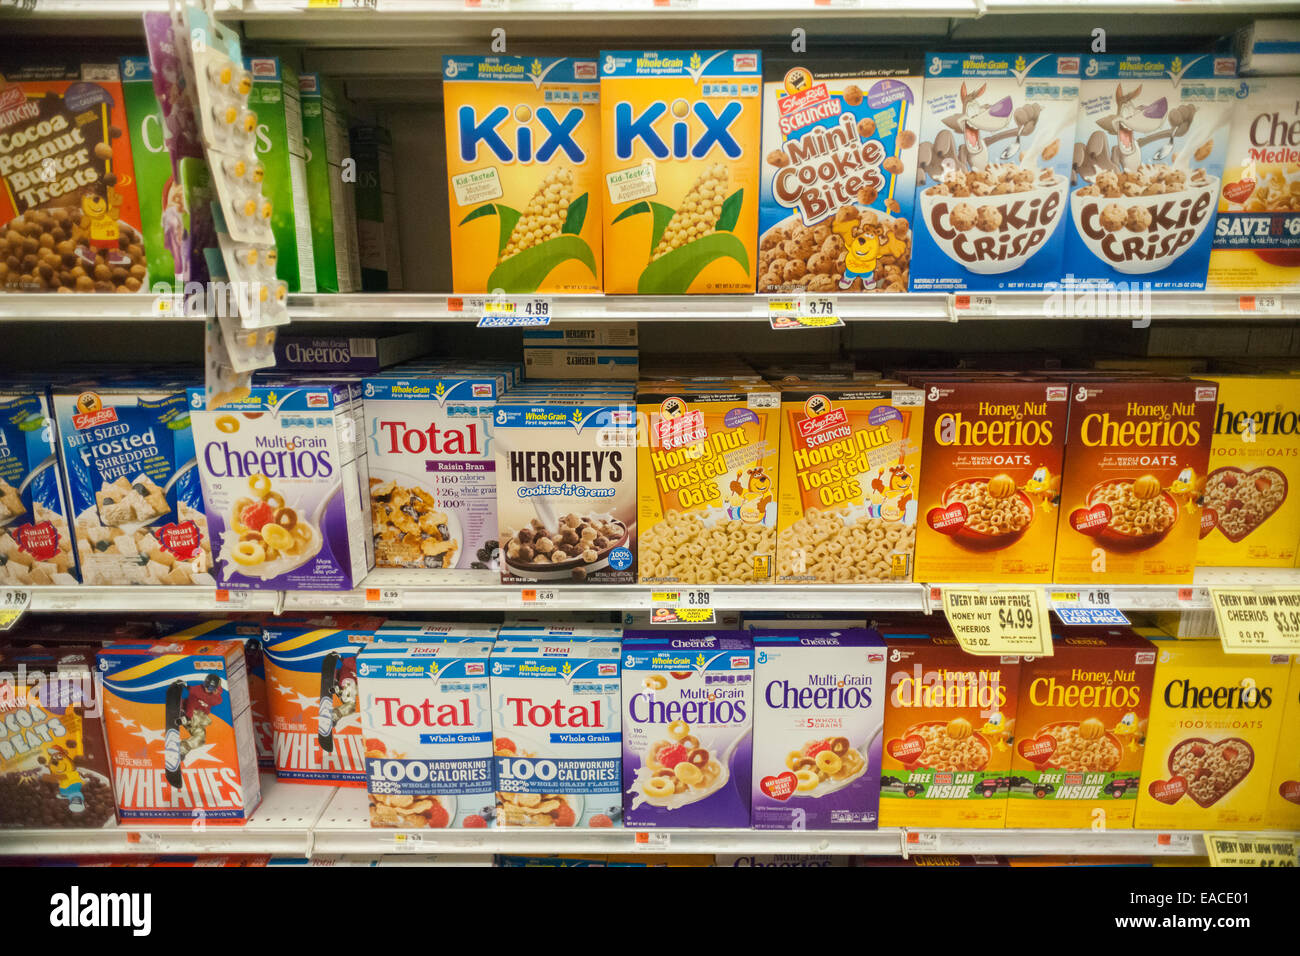 Boxes Of General Mills Breakfast Cereals Mixed In With